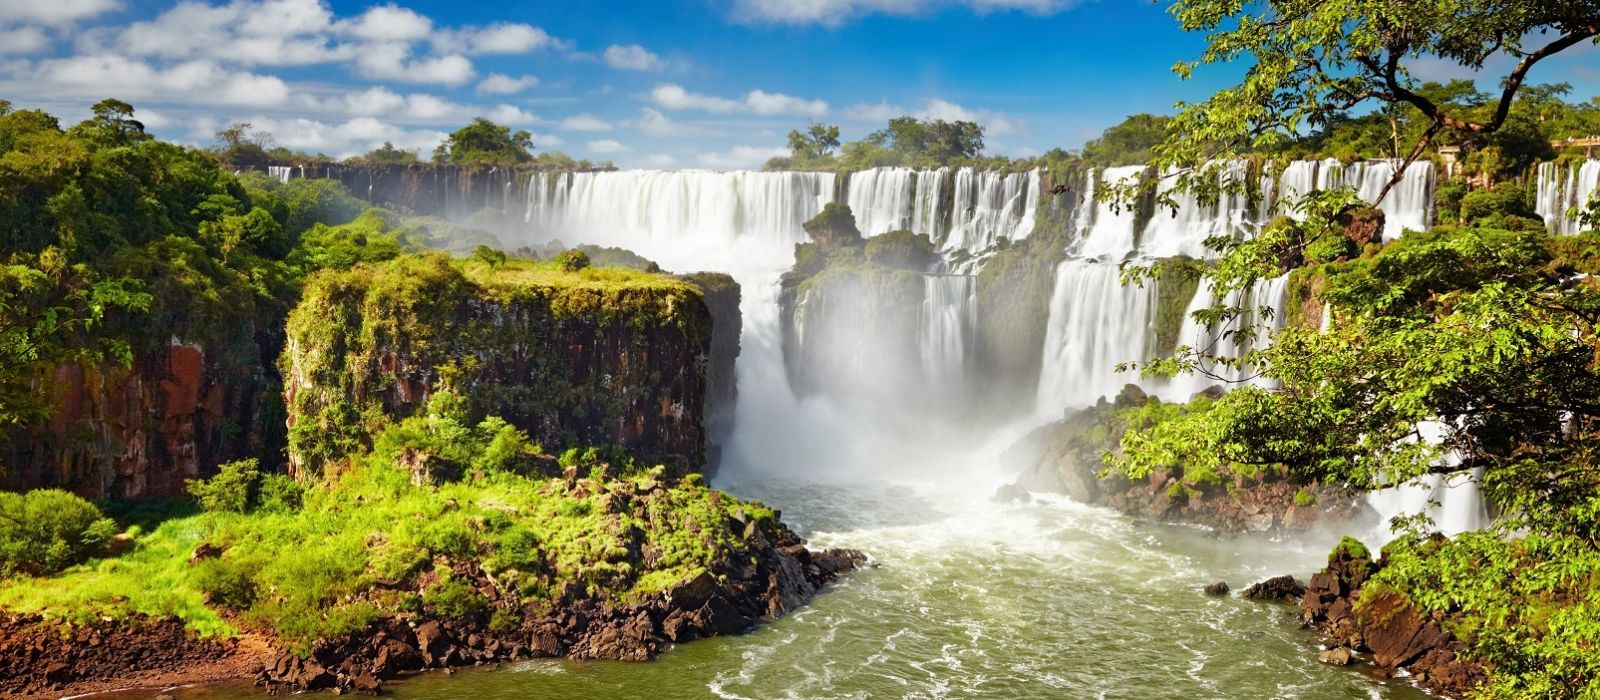 Glaciers, Wildlife and Waterfalls in Argentina Tour Trip 2